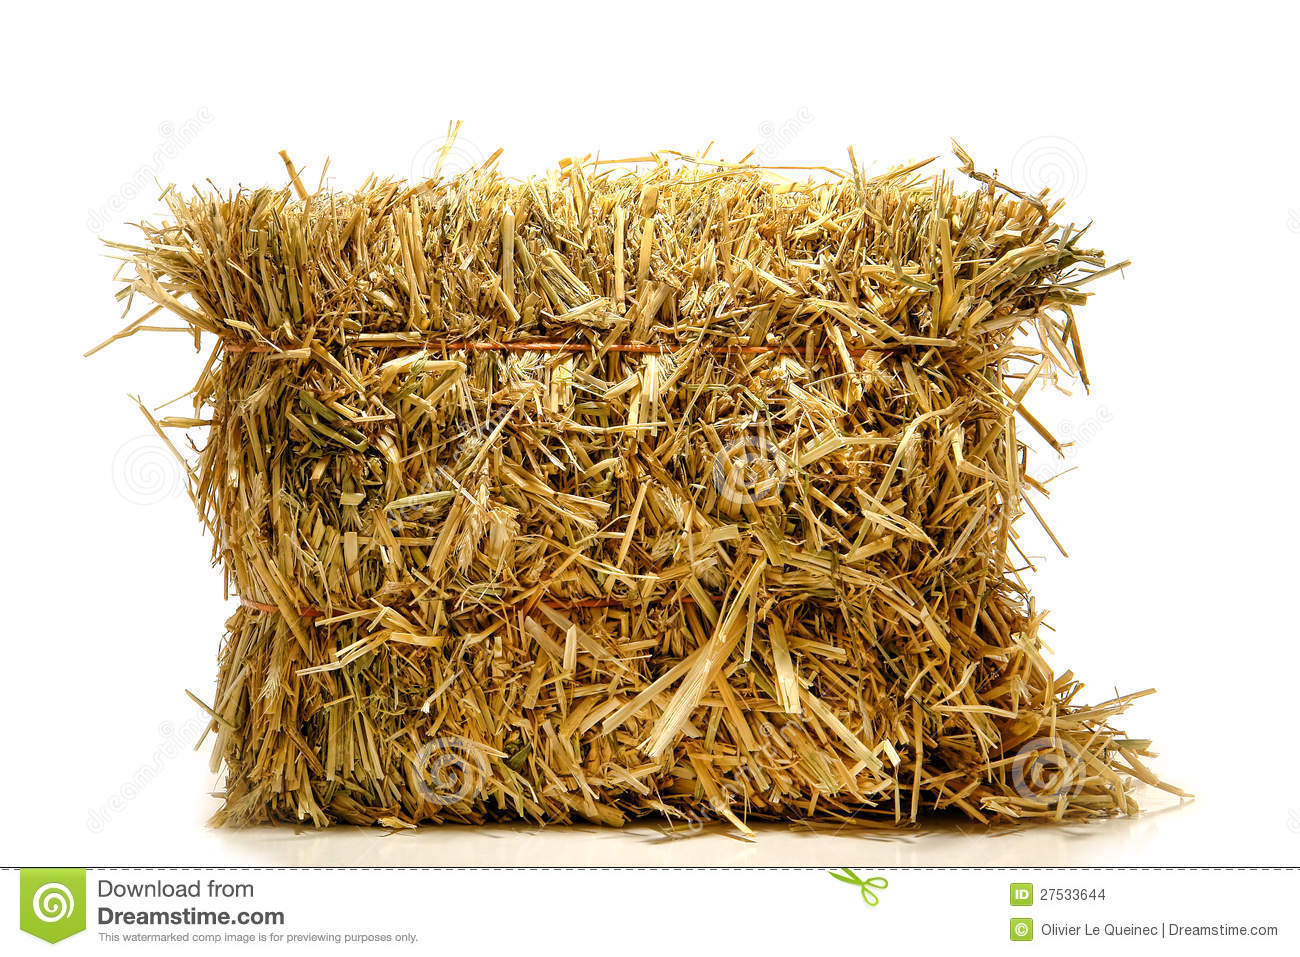 Bale of Natural Farming Straw Hay over White